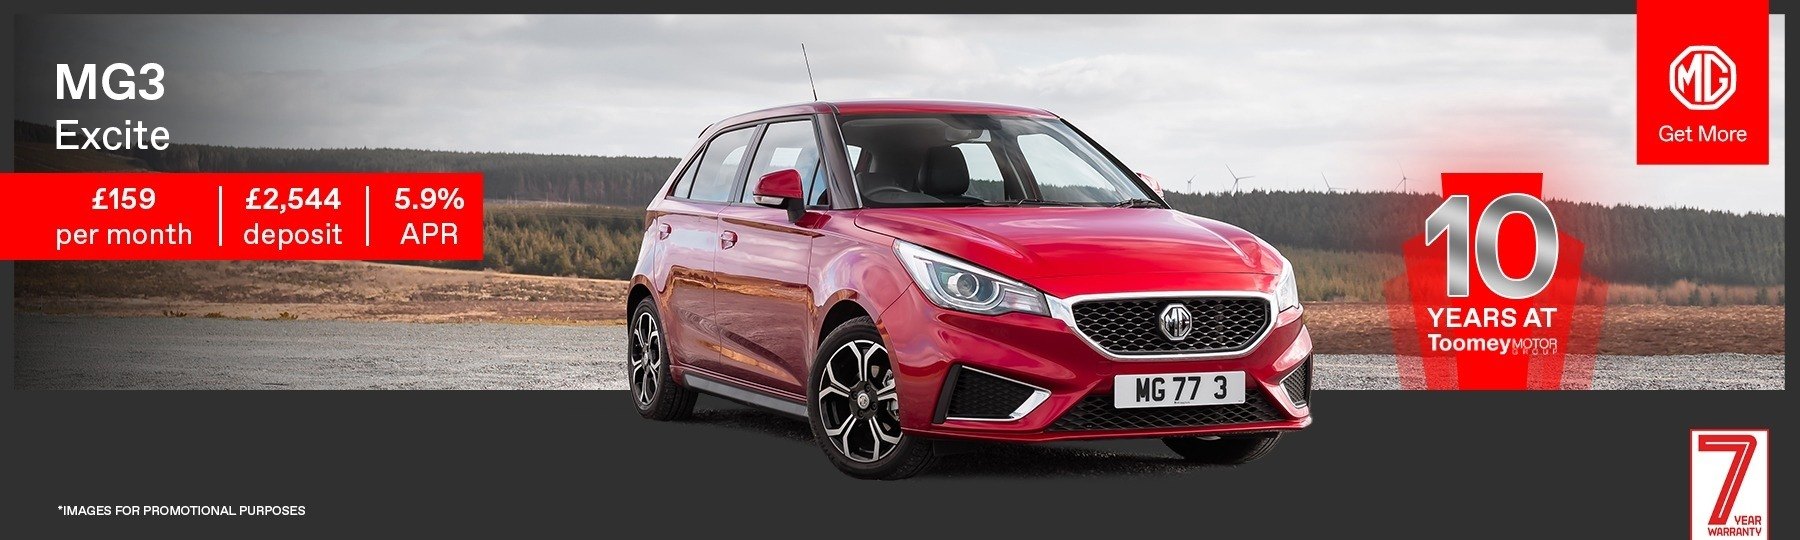 MG MG3 New Car Offer